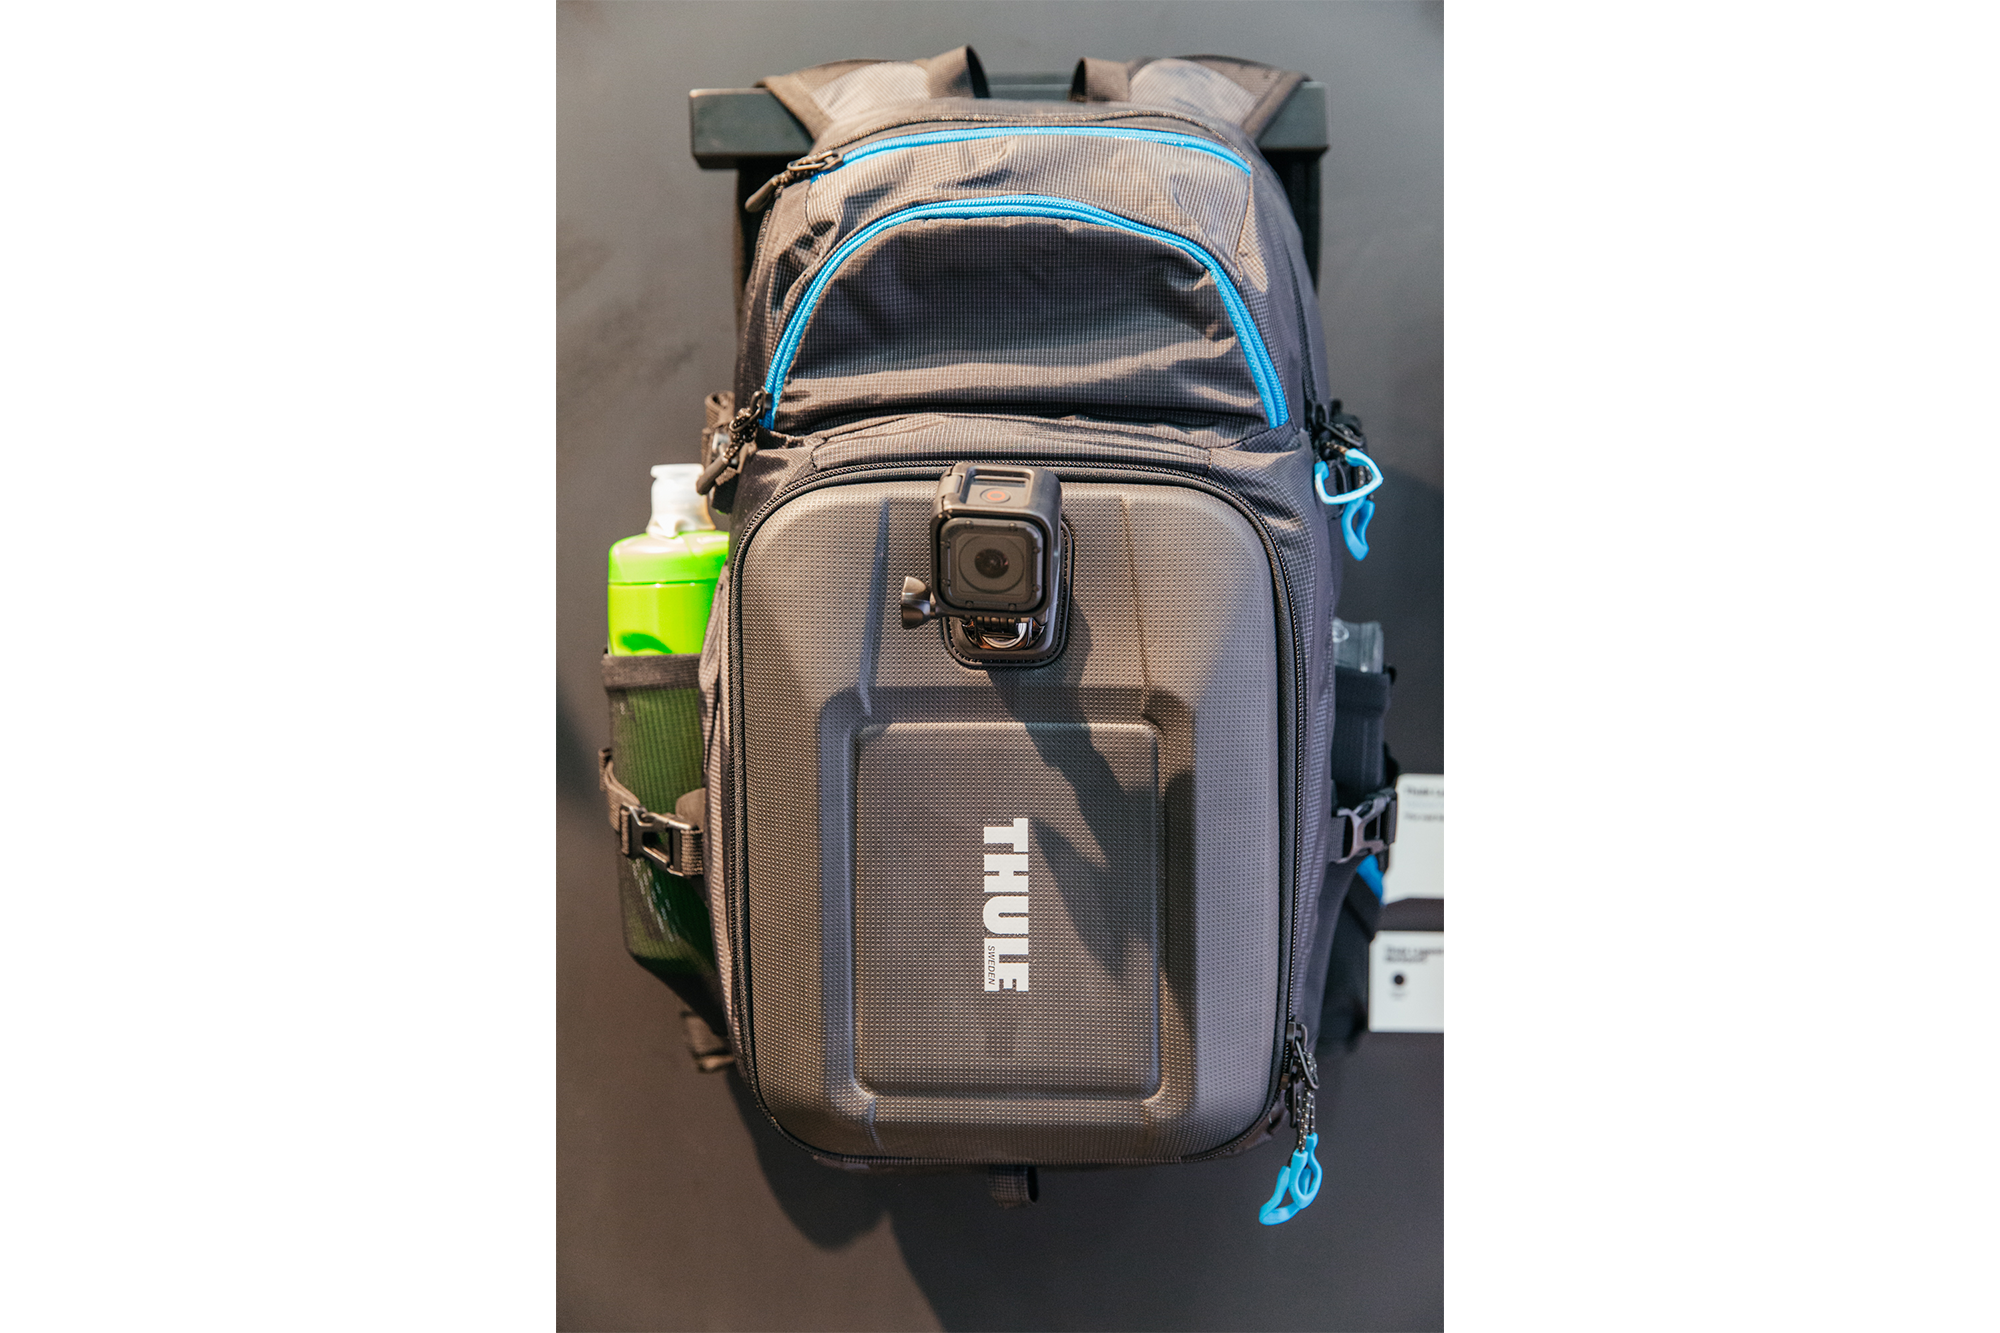 Thule GoPro backpack cam